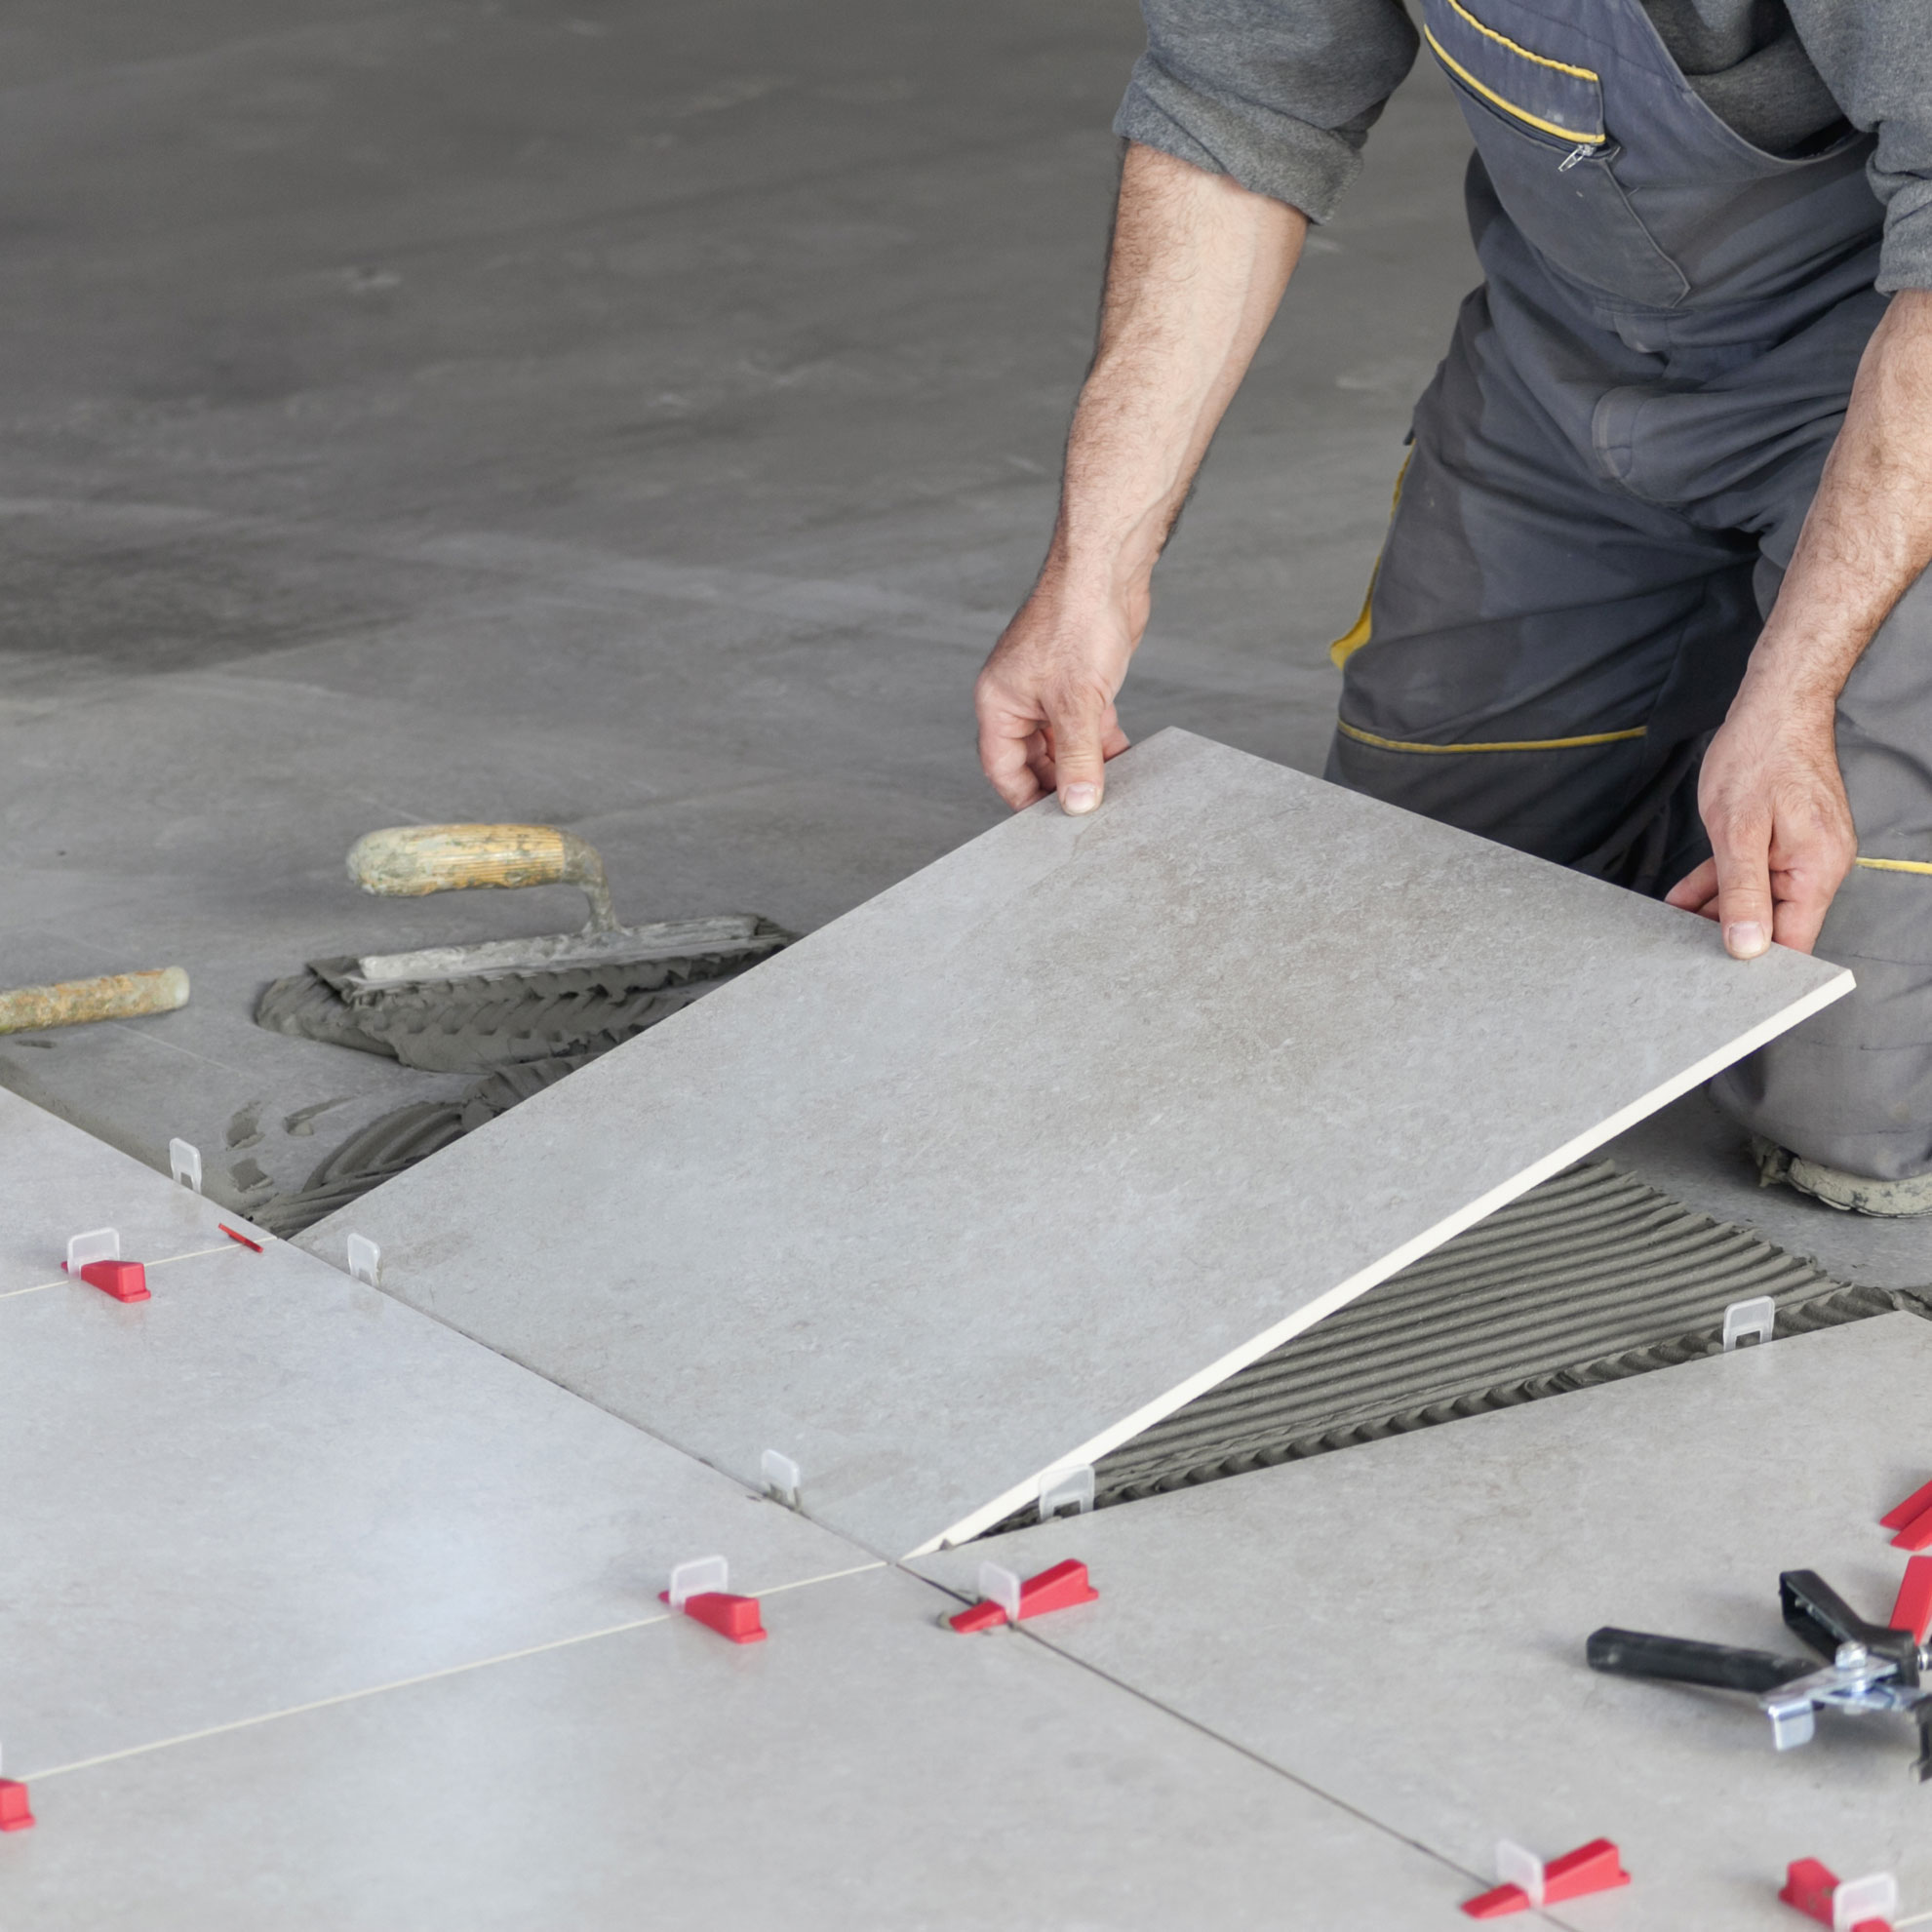 Laying glazed and unglazed porcelain tiles rak tile adhesive measuring no more than 3 mm in thickness and to use class c2 or dl glues 4 avoid laying without expansion joints or joints dailygadgetfo Choice Image